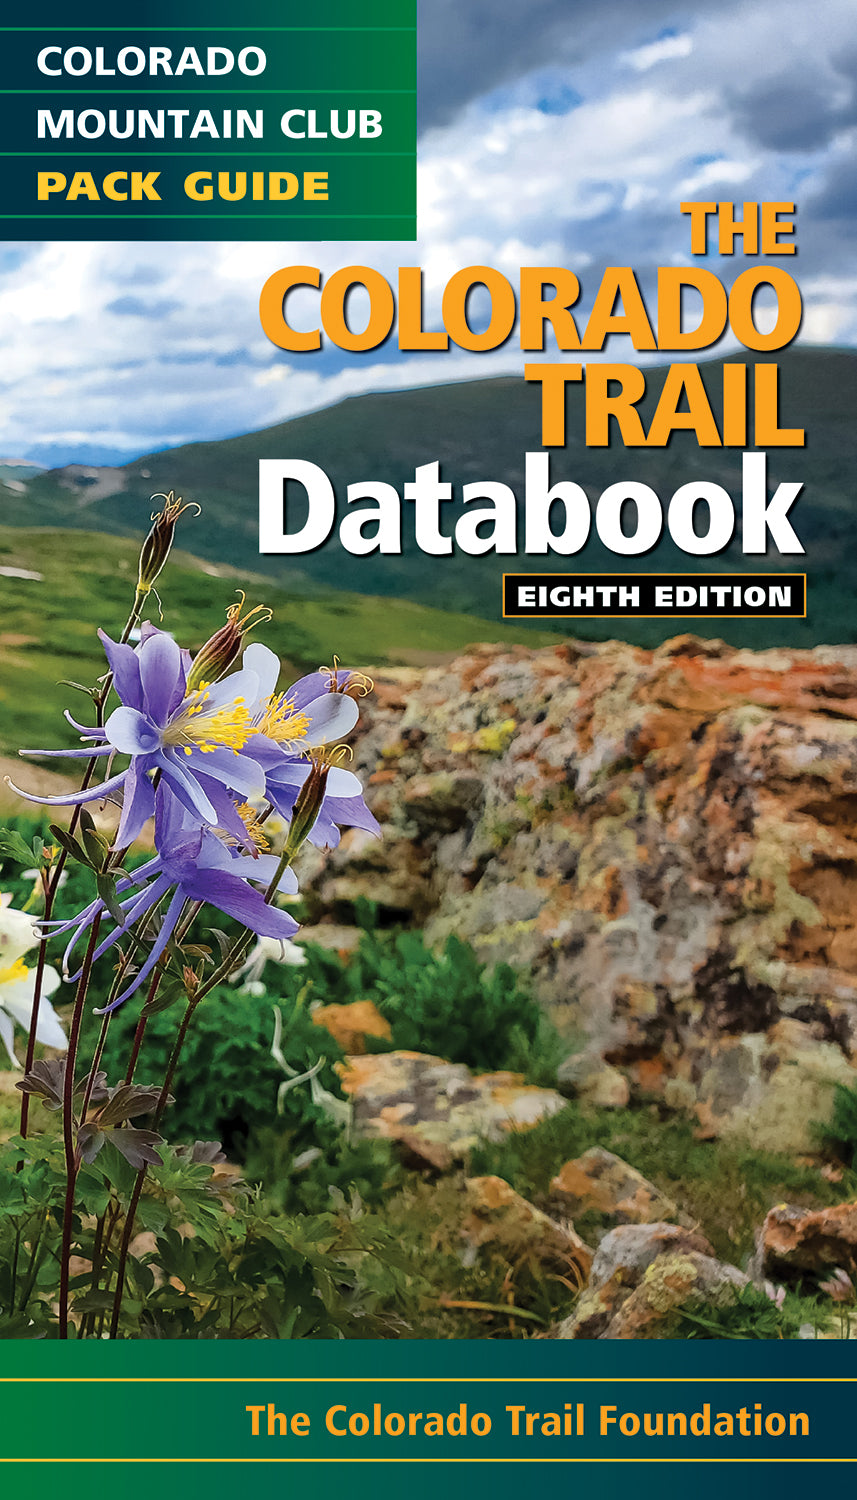 Colorado Trail Databook, 8th Edition